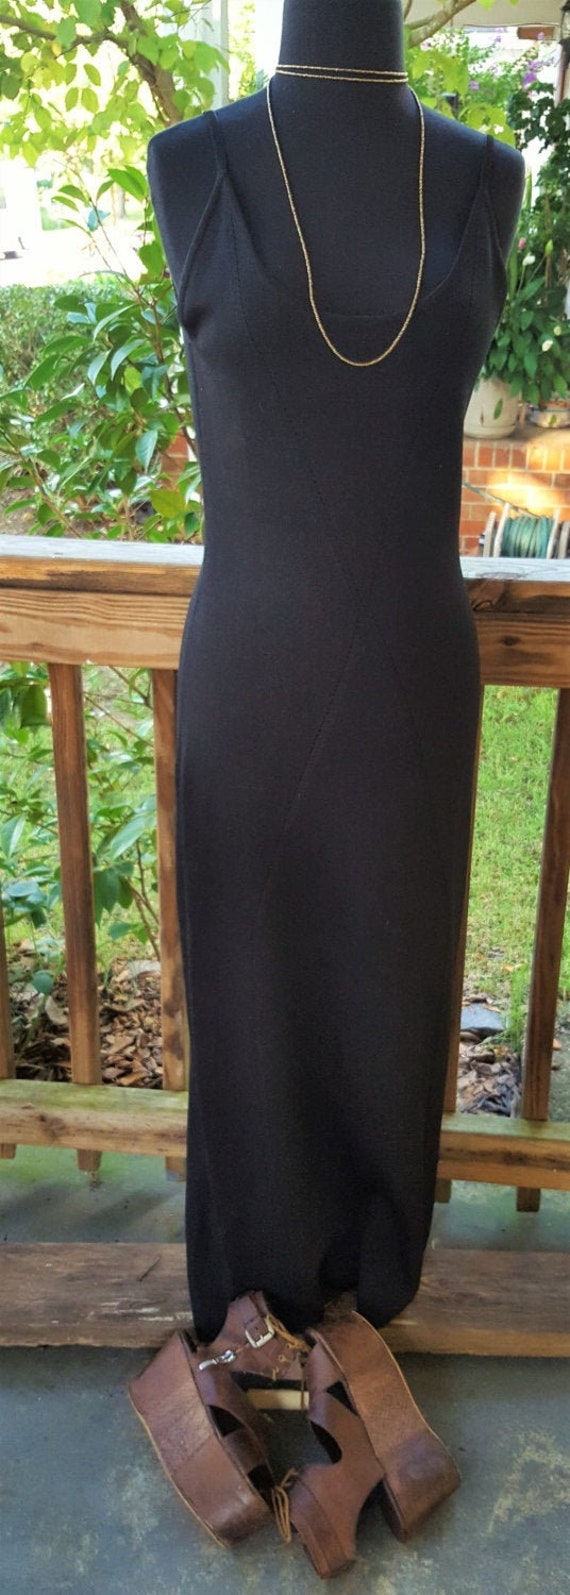 Vintage Boho Willi Smith Black Long Maxi Knit Dres